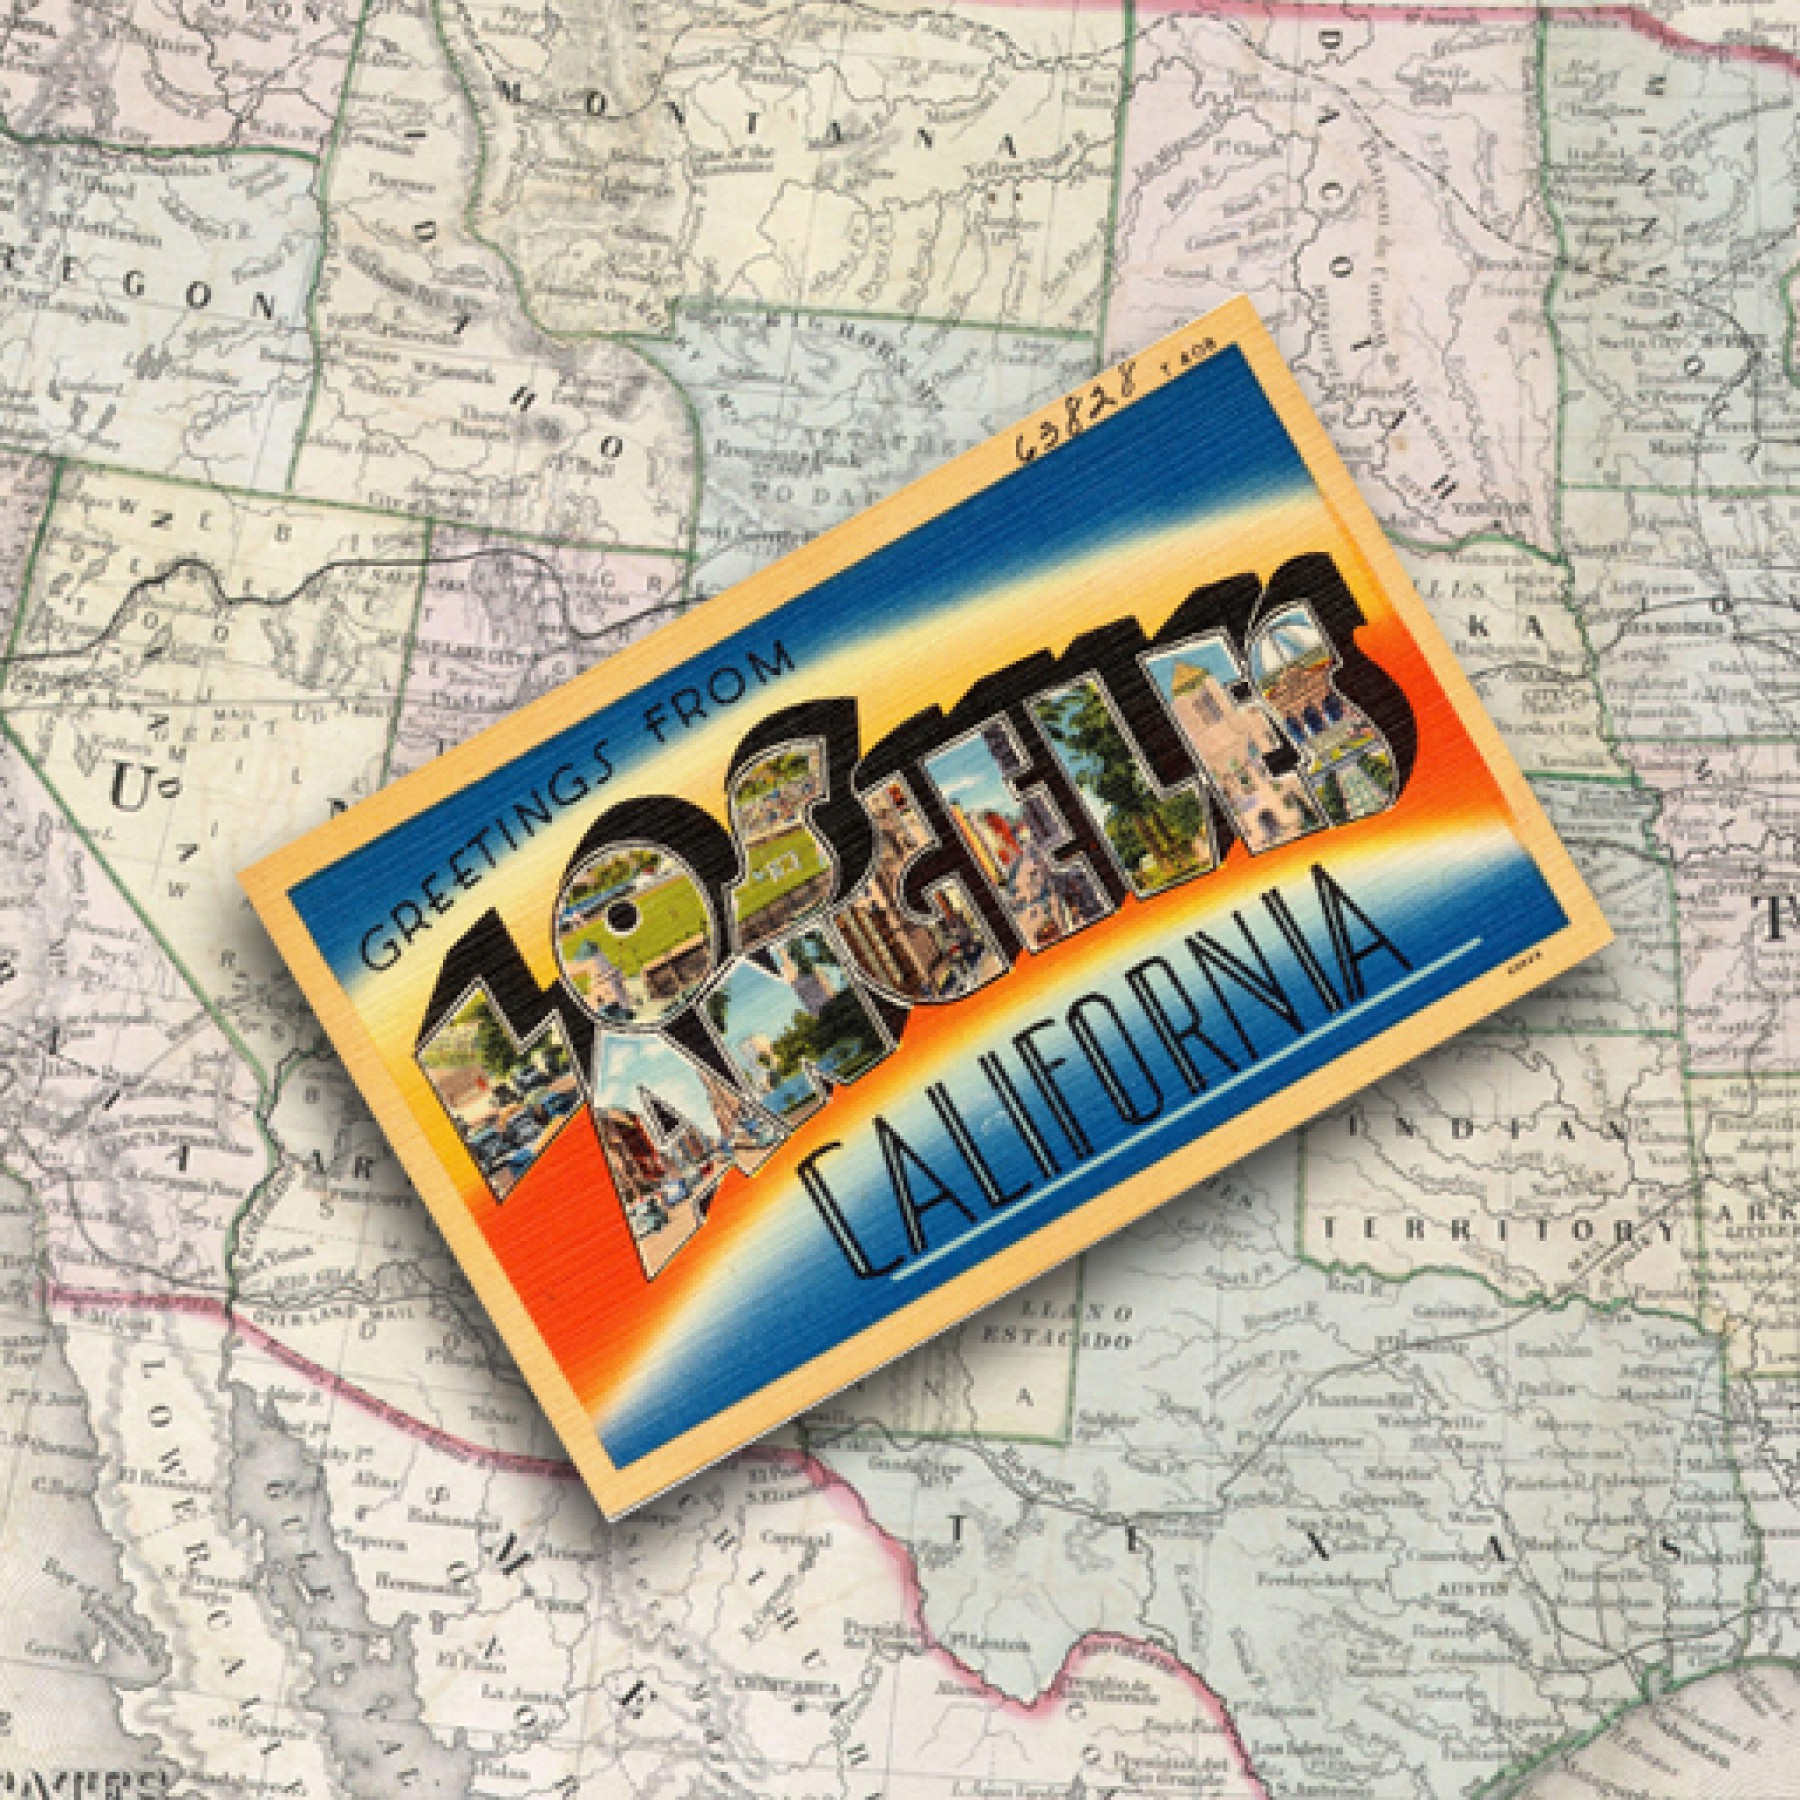 postcards-history-travel-adventure-kids-adults-main-location1